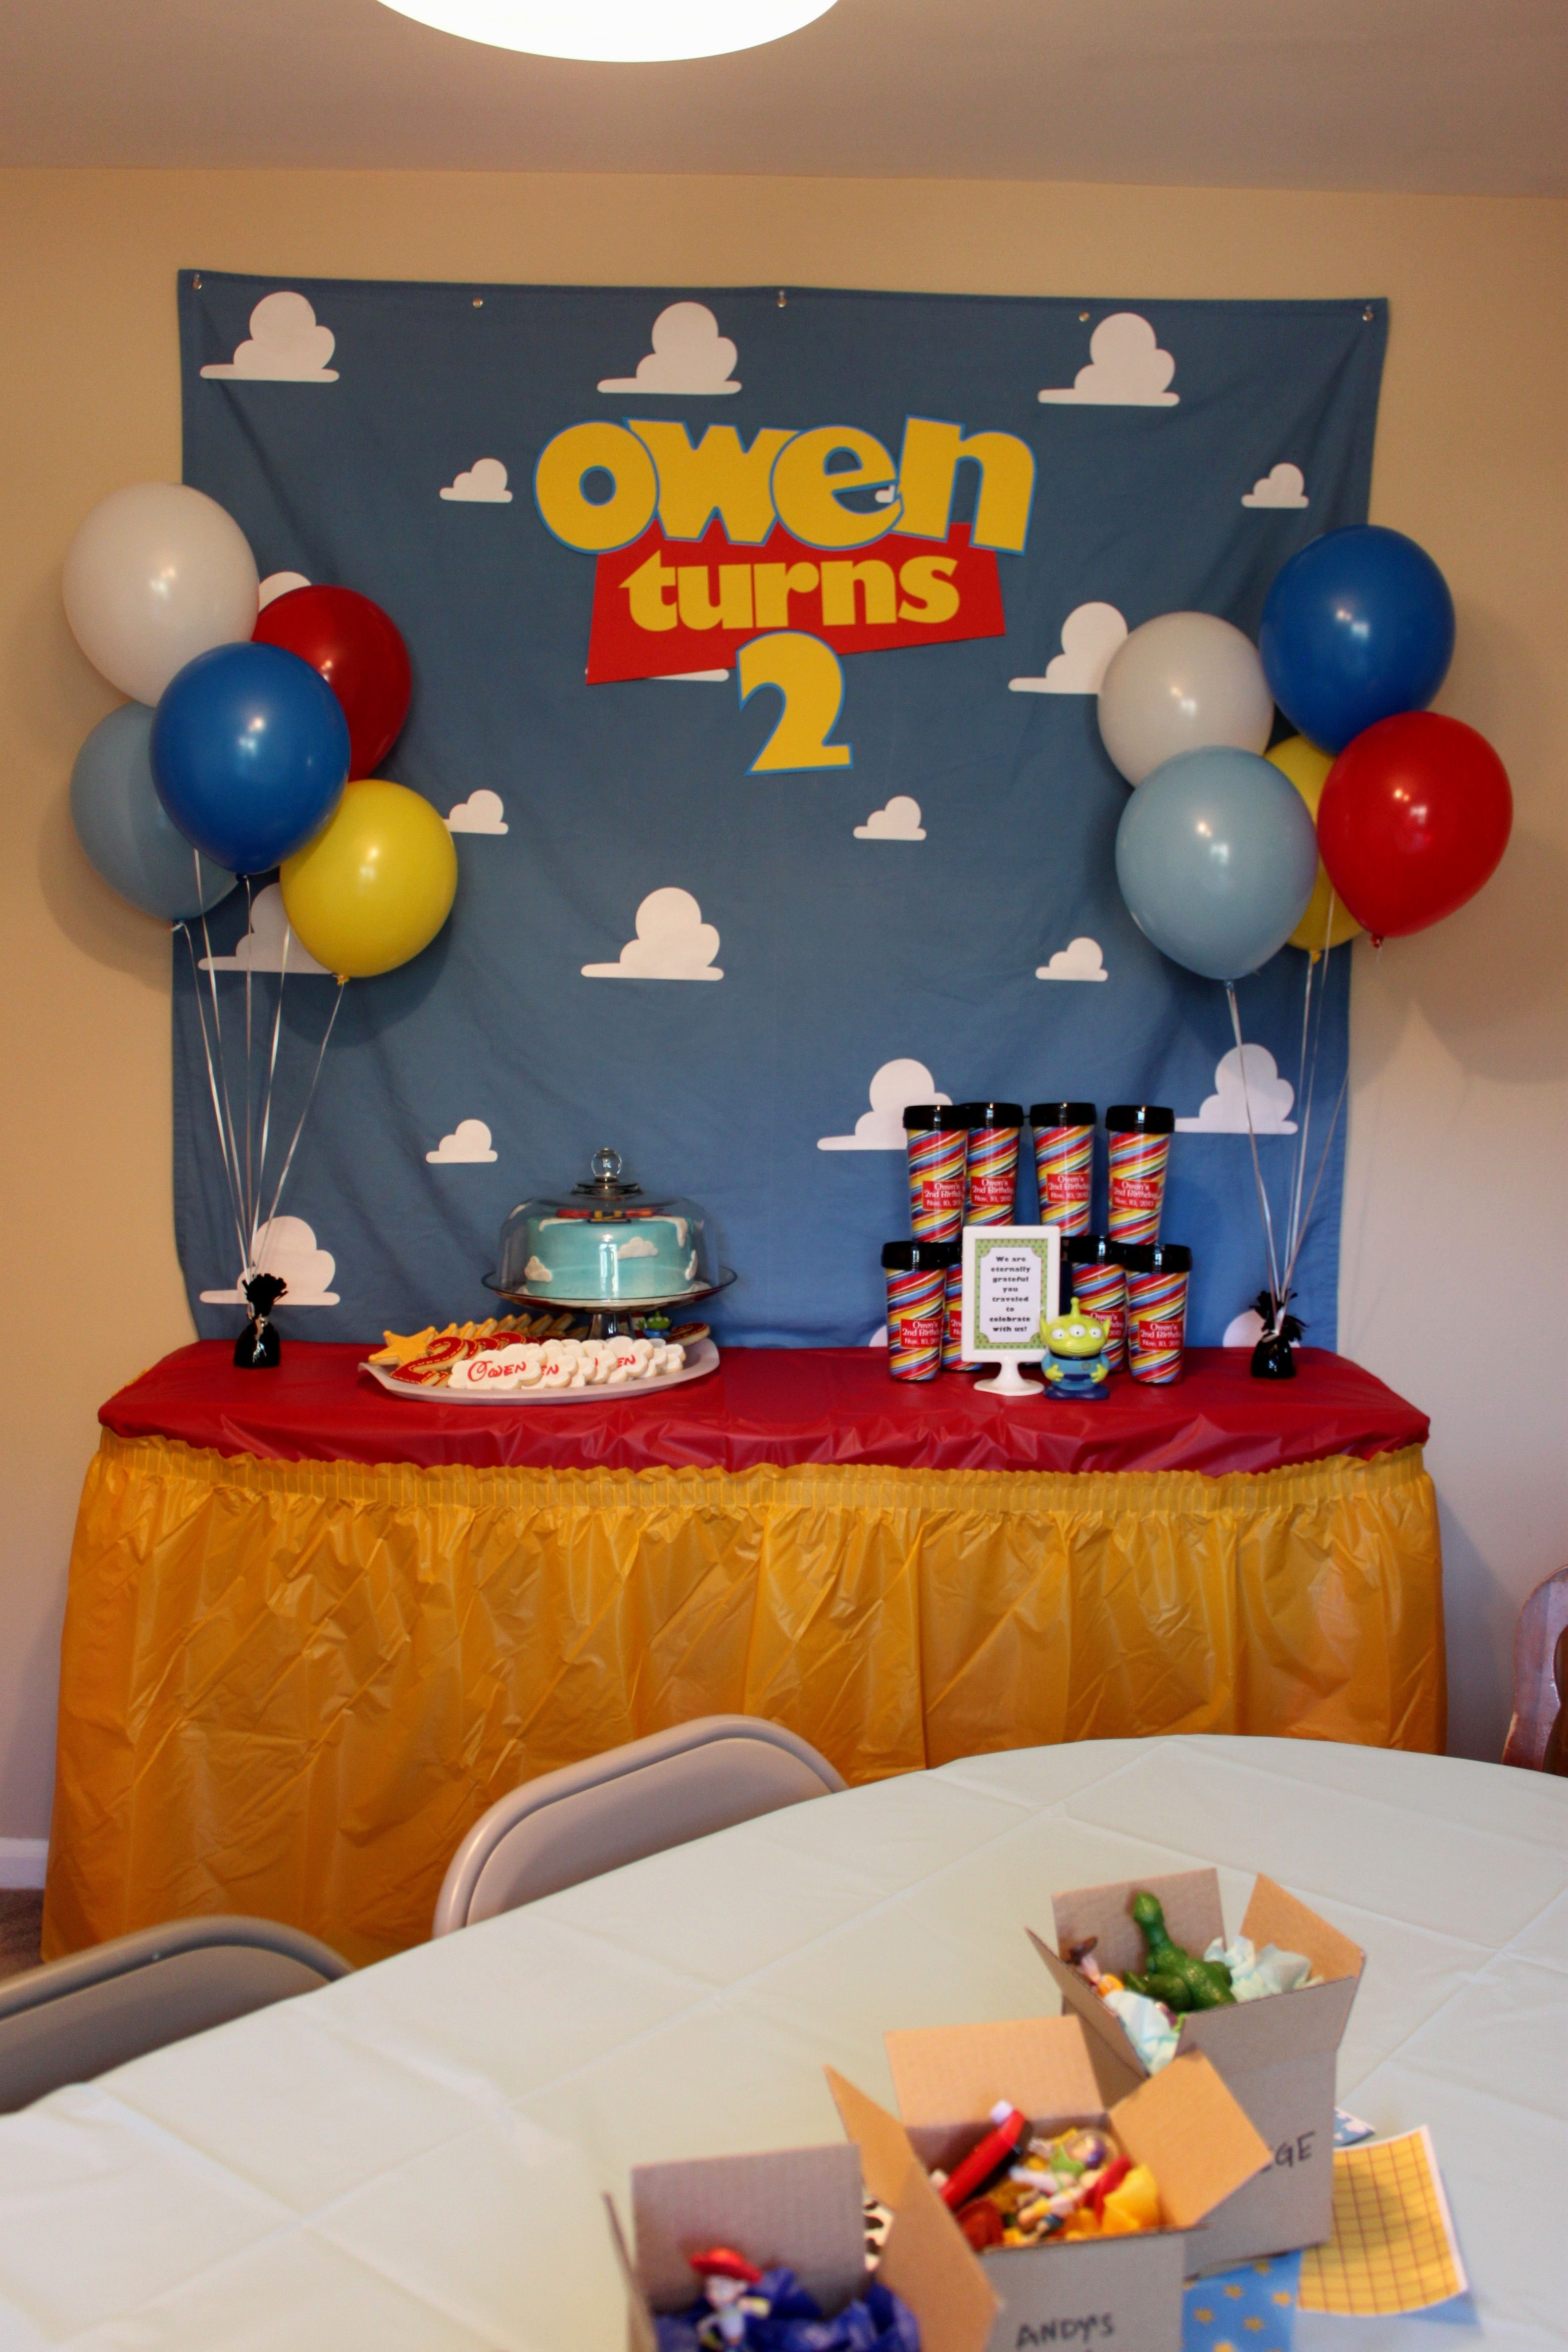 10 Spectacular Toy Story Birthday Party Ideas toy story themed birthday party ideas decorating of party 1 2021